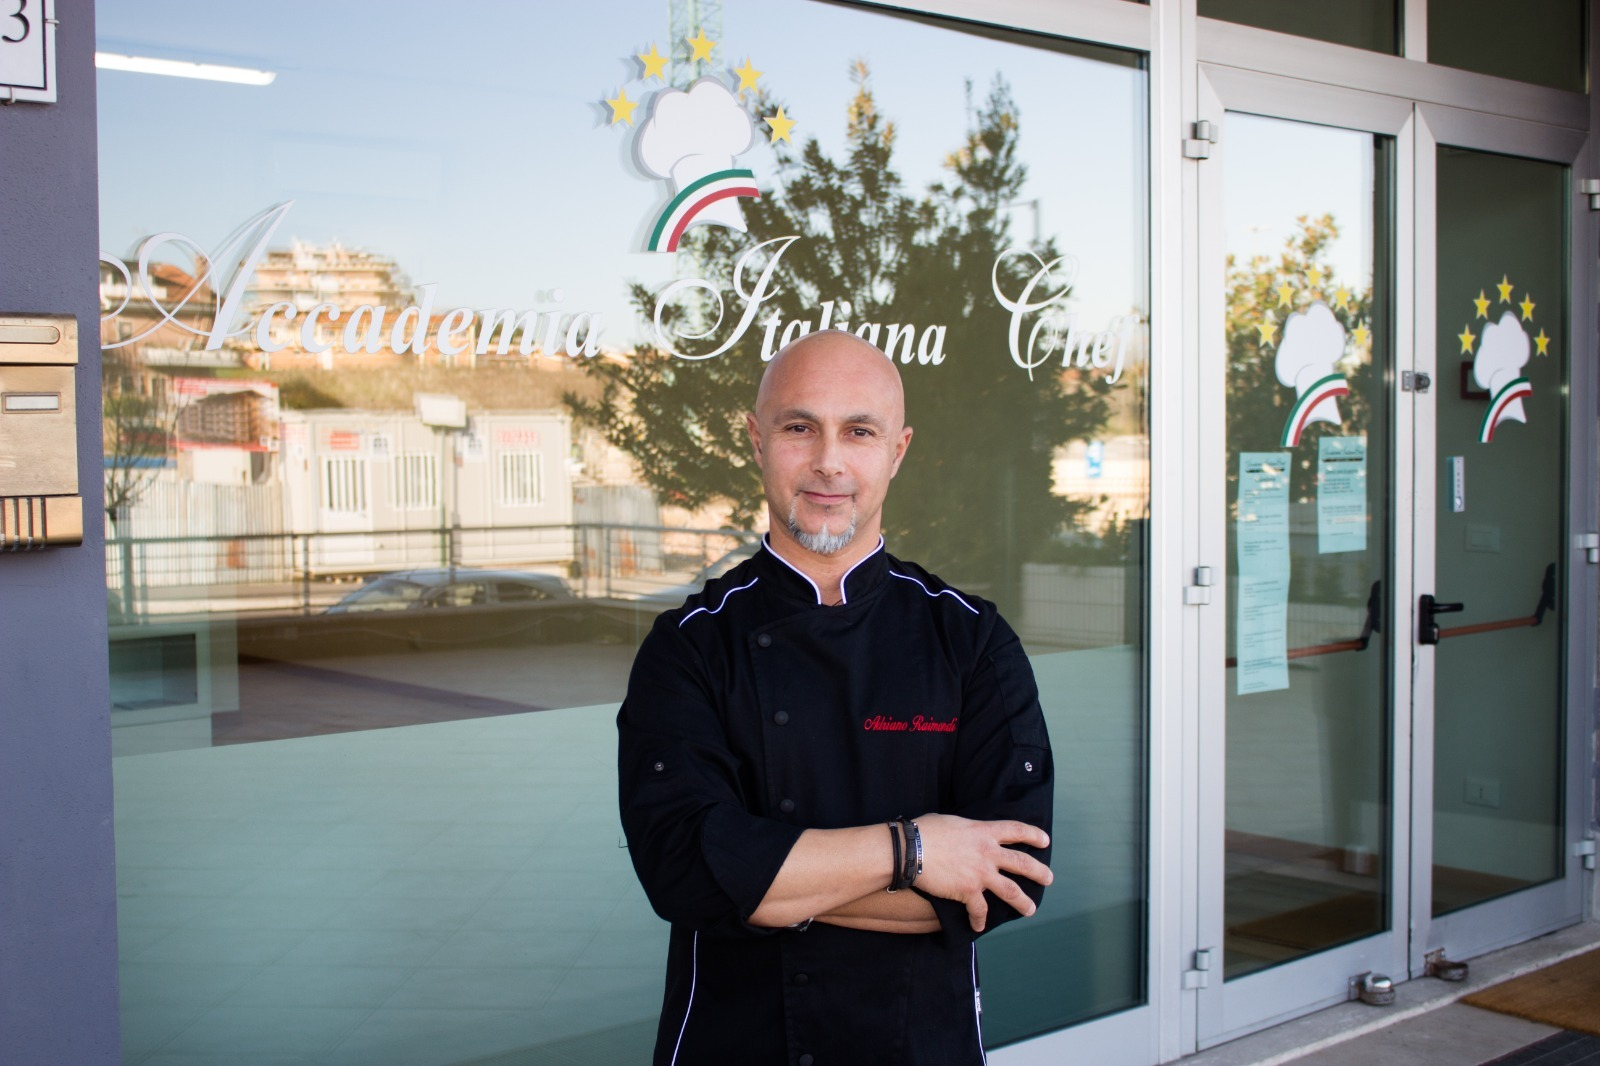 chef adriano raimondi